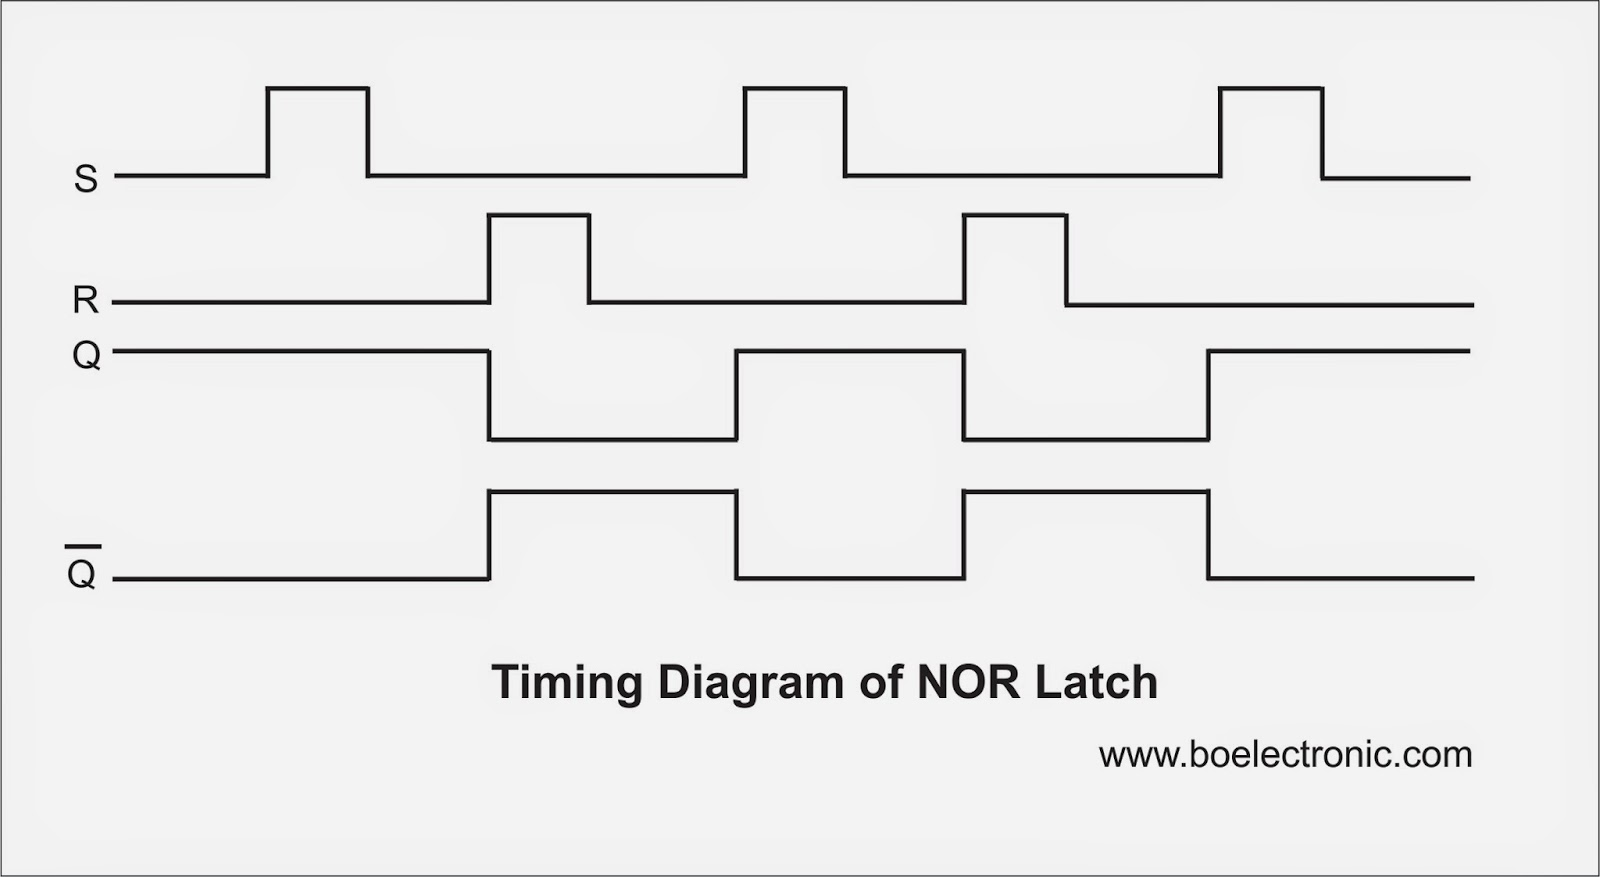 Plc Diagram With A Timing Circuit Schematics Wiring Diagrams For Nand Gate Truth Table Step Block